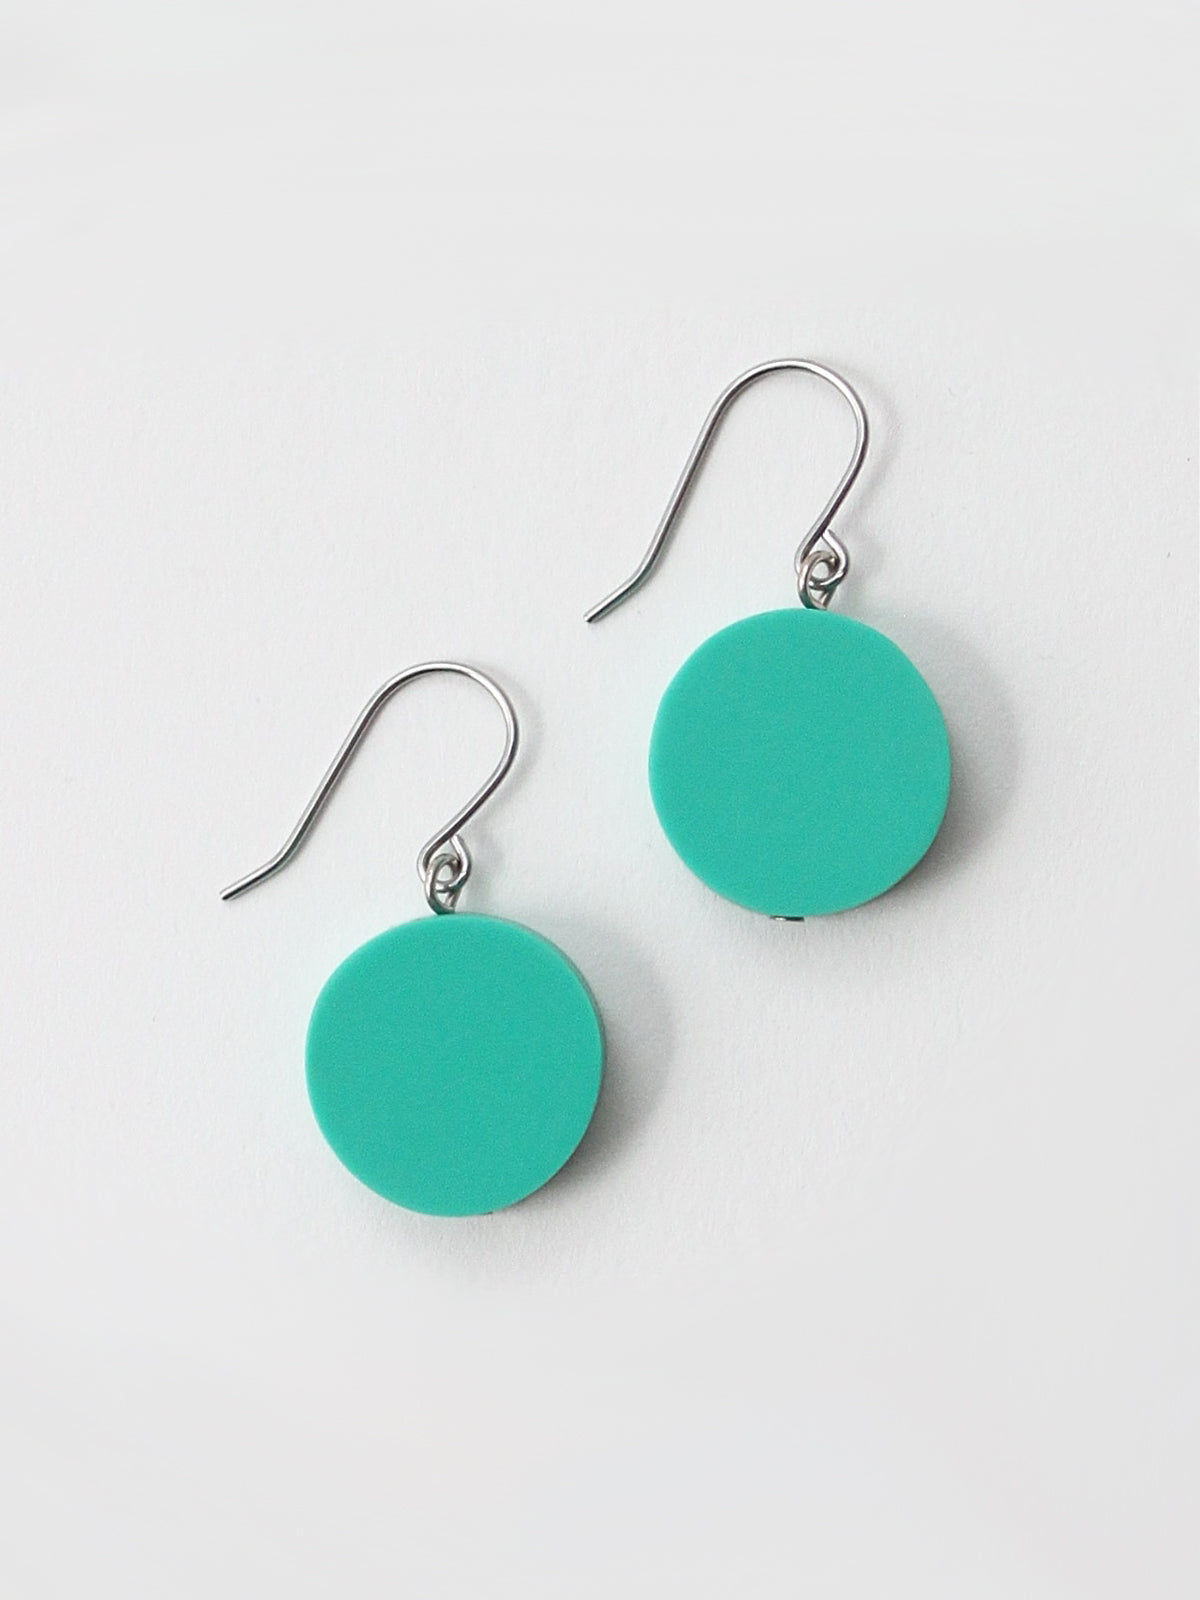 Sylca Designs Sophie Earrings, Ocean - Statement Boutique